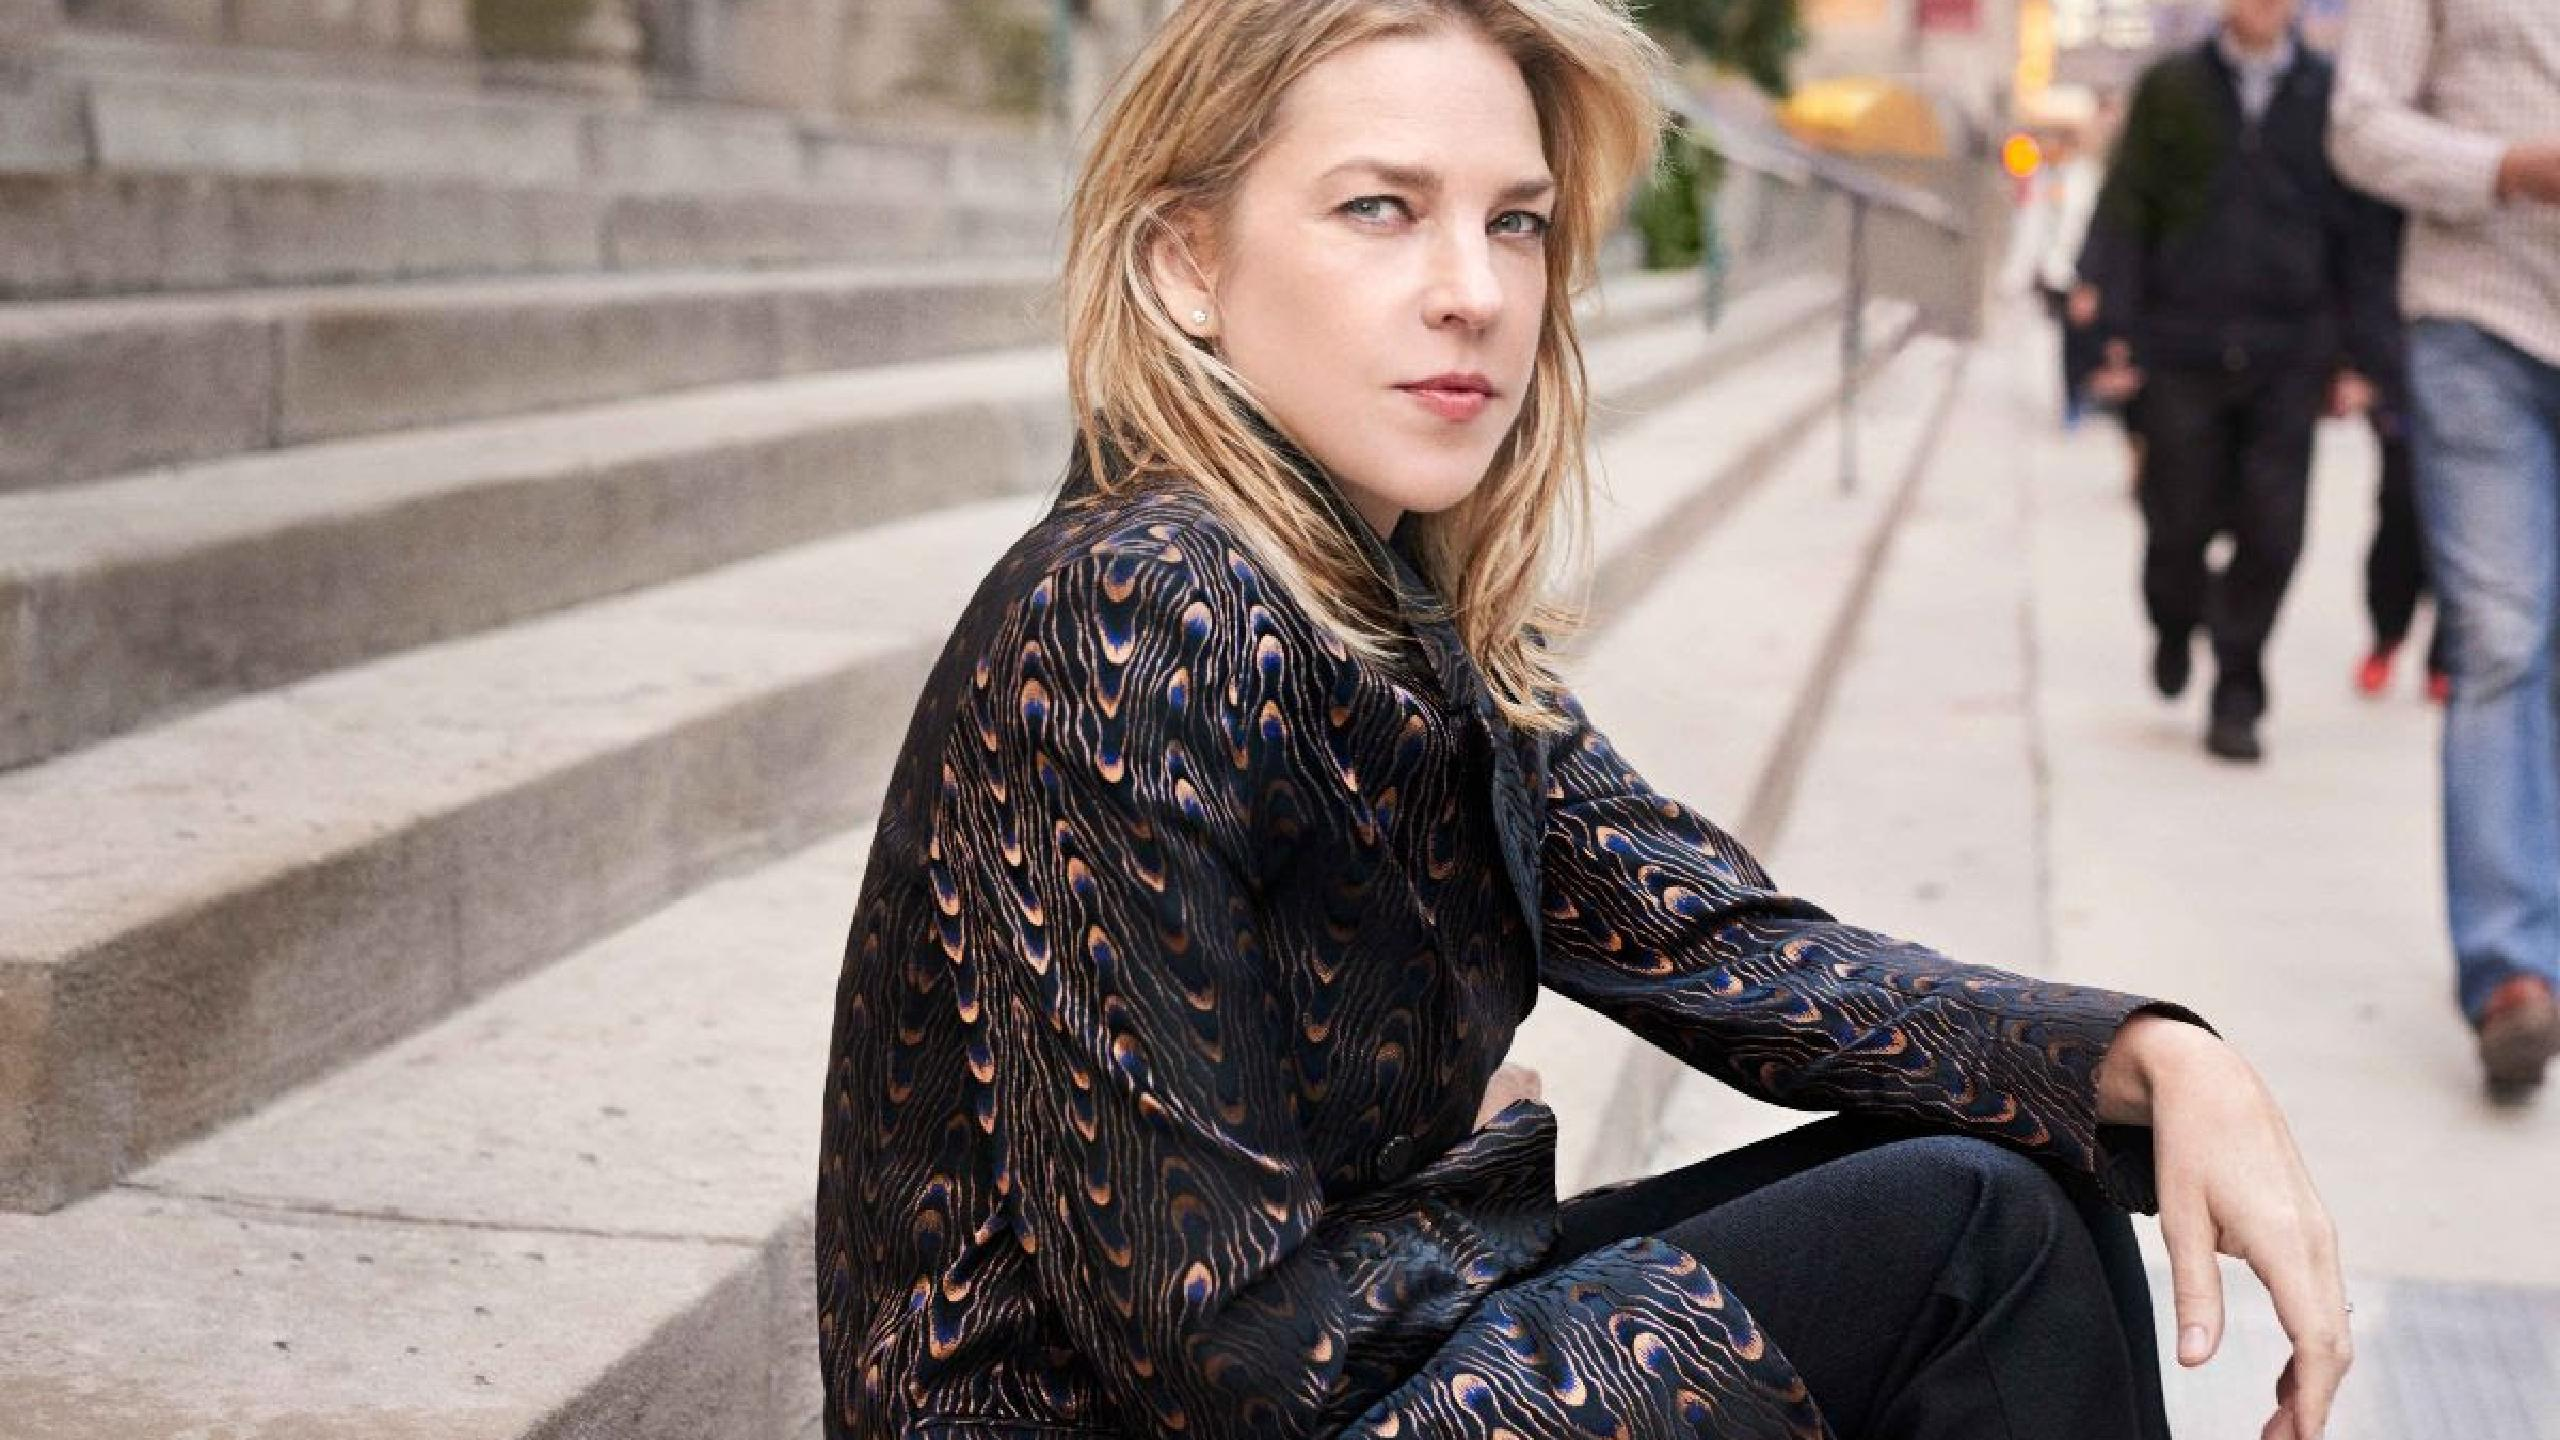 Diana Krall Tour Dates 2020 Diana Krall tour dates 2019 2020. Diana Krall tickets and concerts